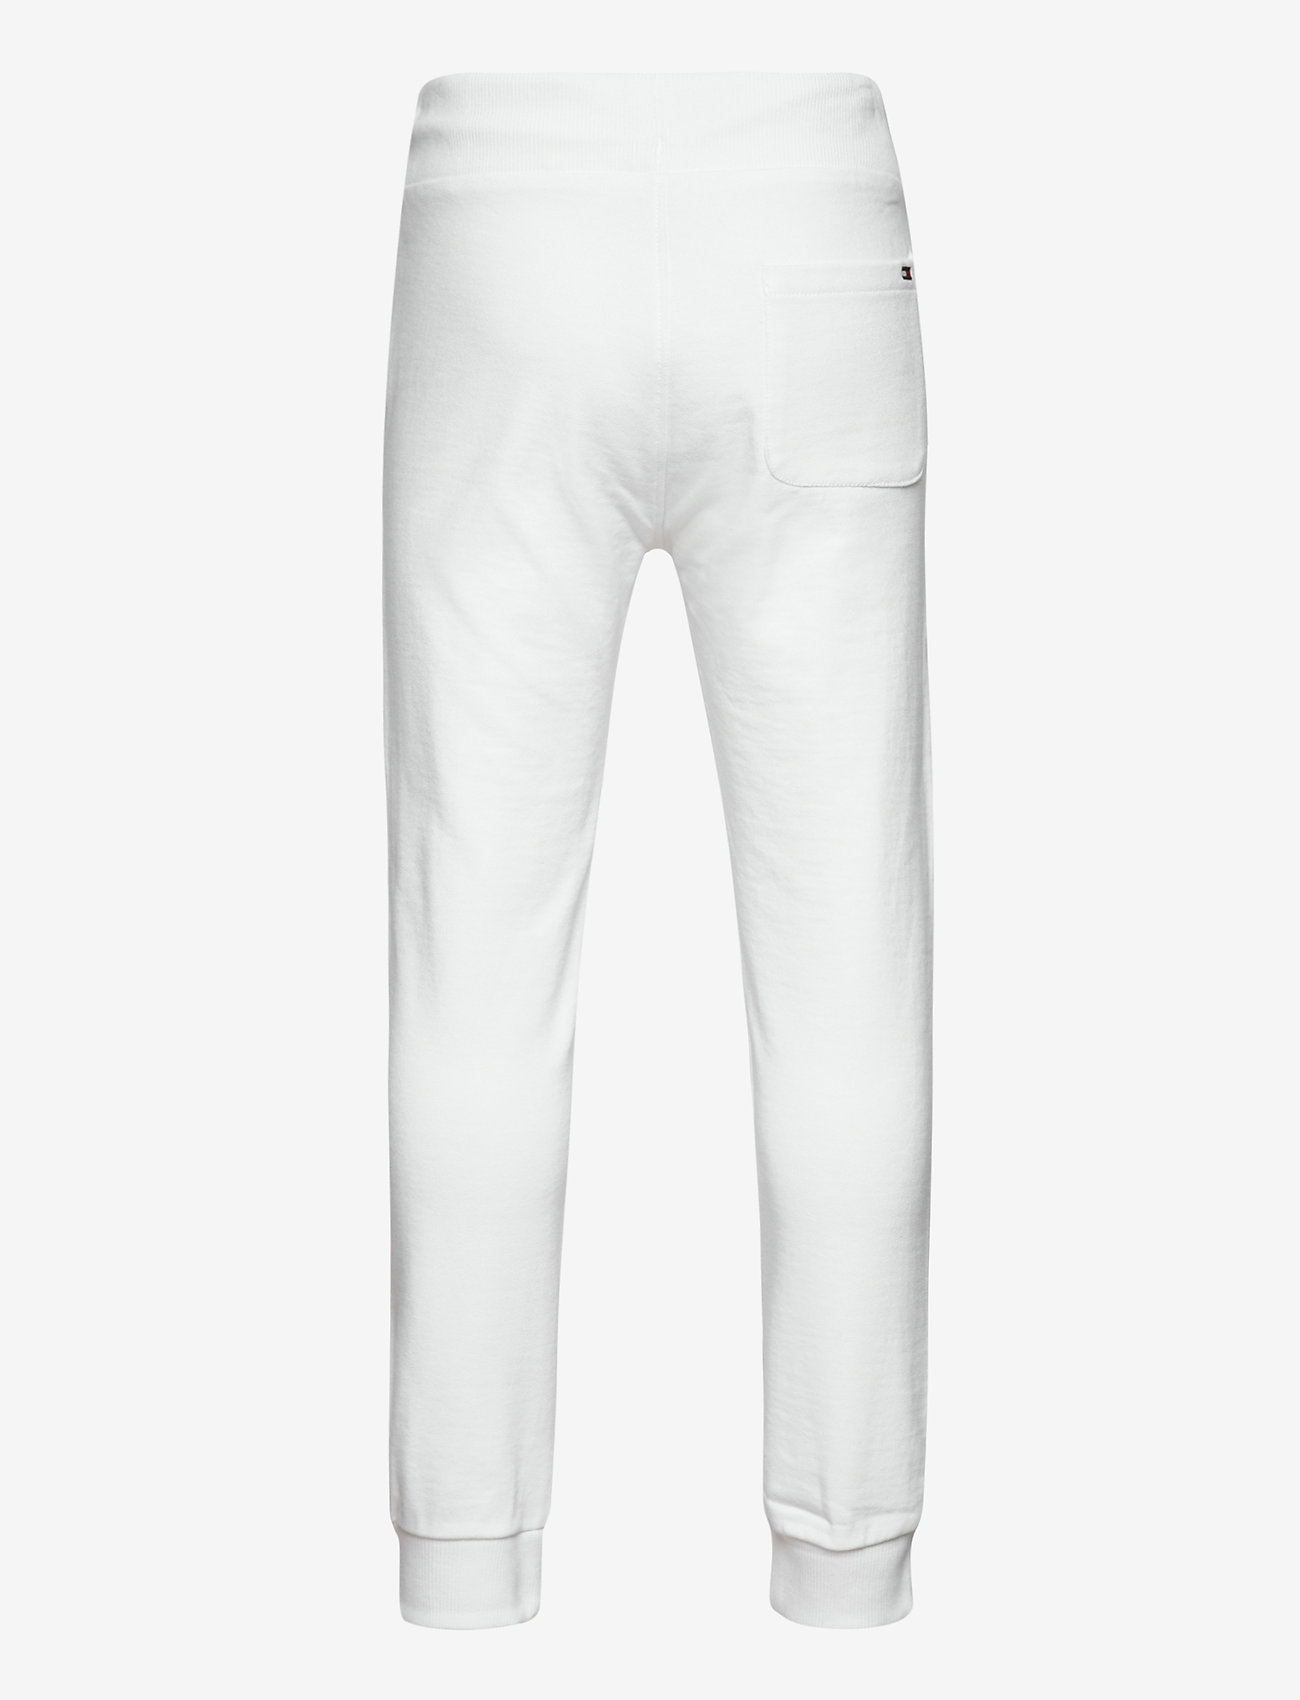 Tommy Hilfiger - ESSENTIAL SWEATPANTS - sweatpants - white - 1